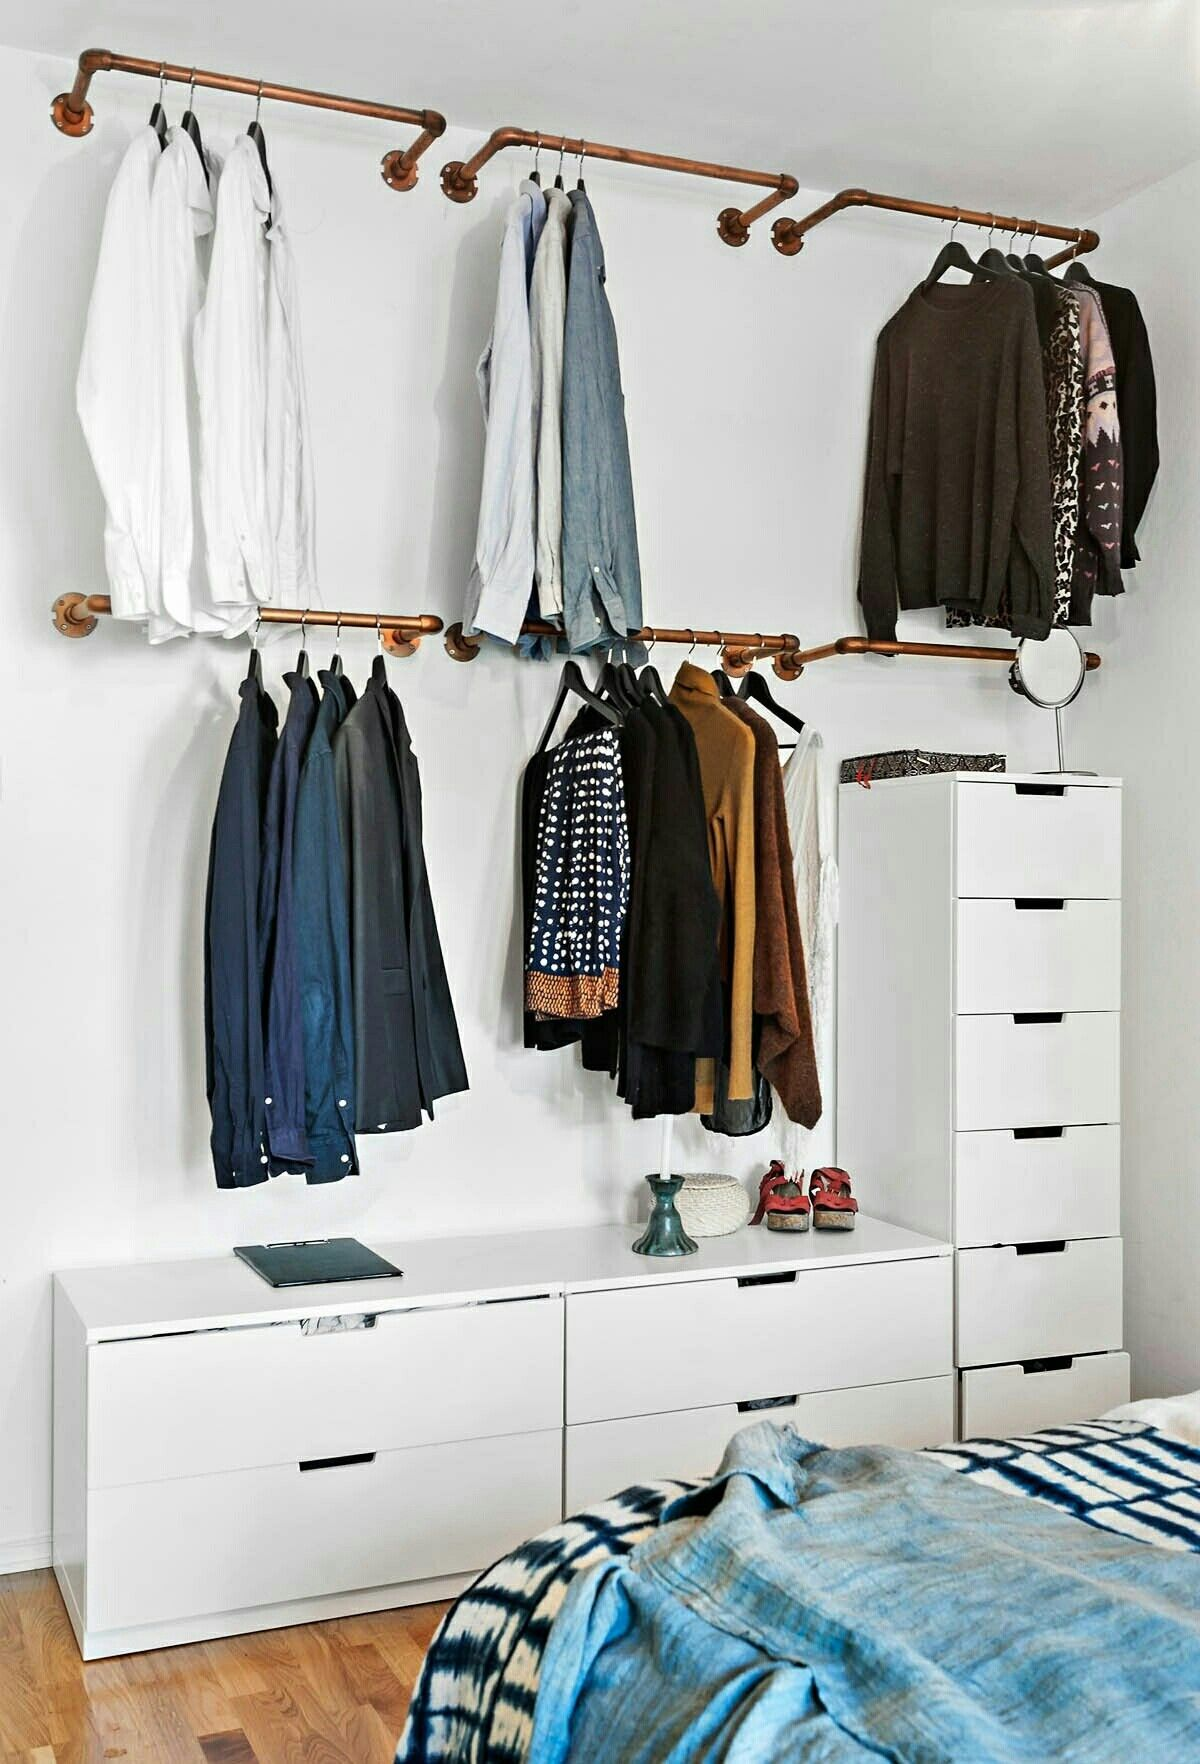 25 Most Clever Storage Ideas For Small Spaces Created By